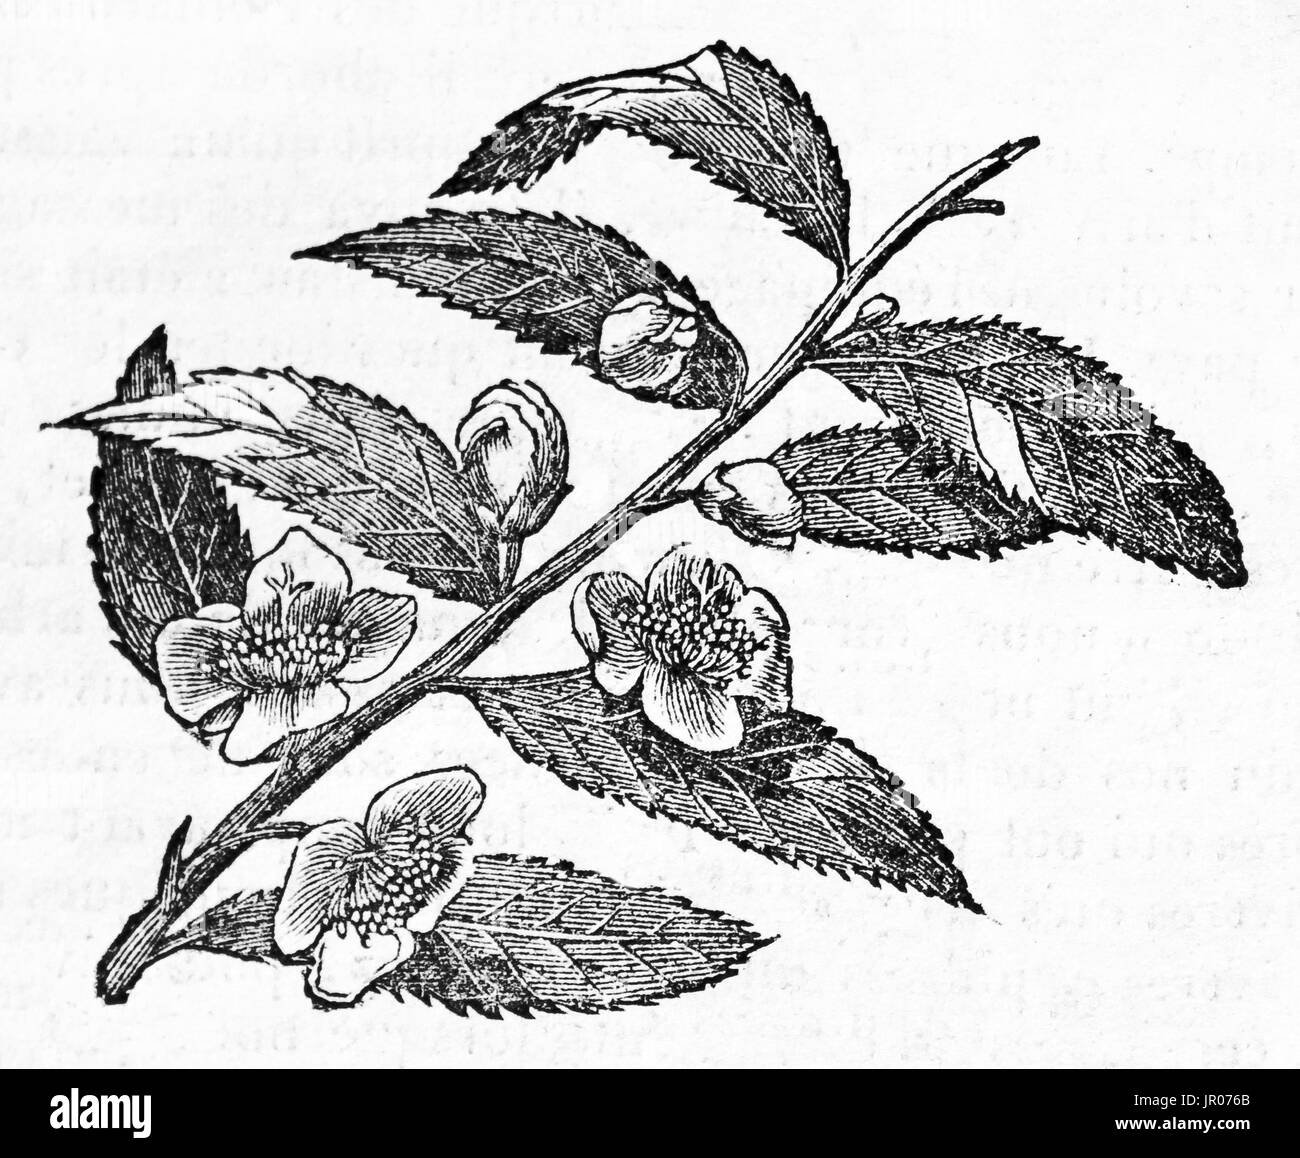 Old illustration of a Tea sprig. By unidentified author, published on Magasin Pittoresque, Paris, 1833. - Stock Image